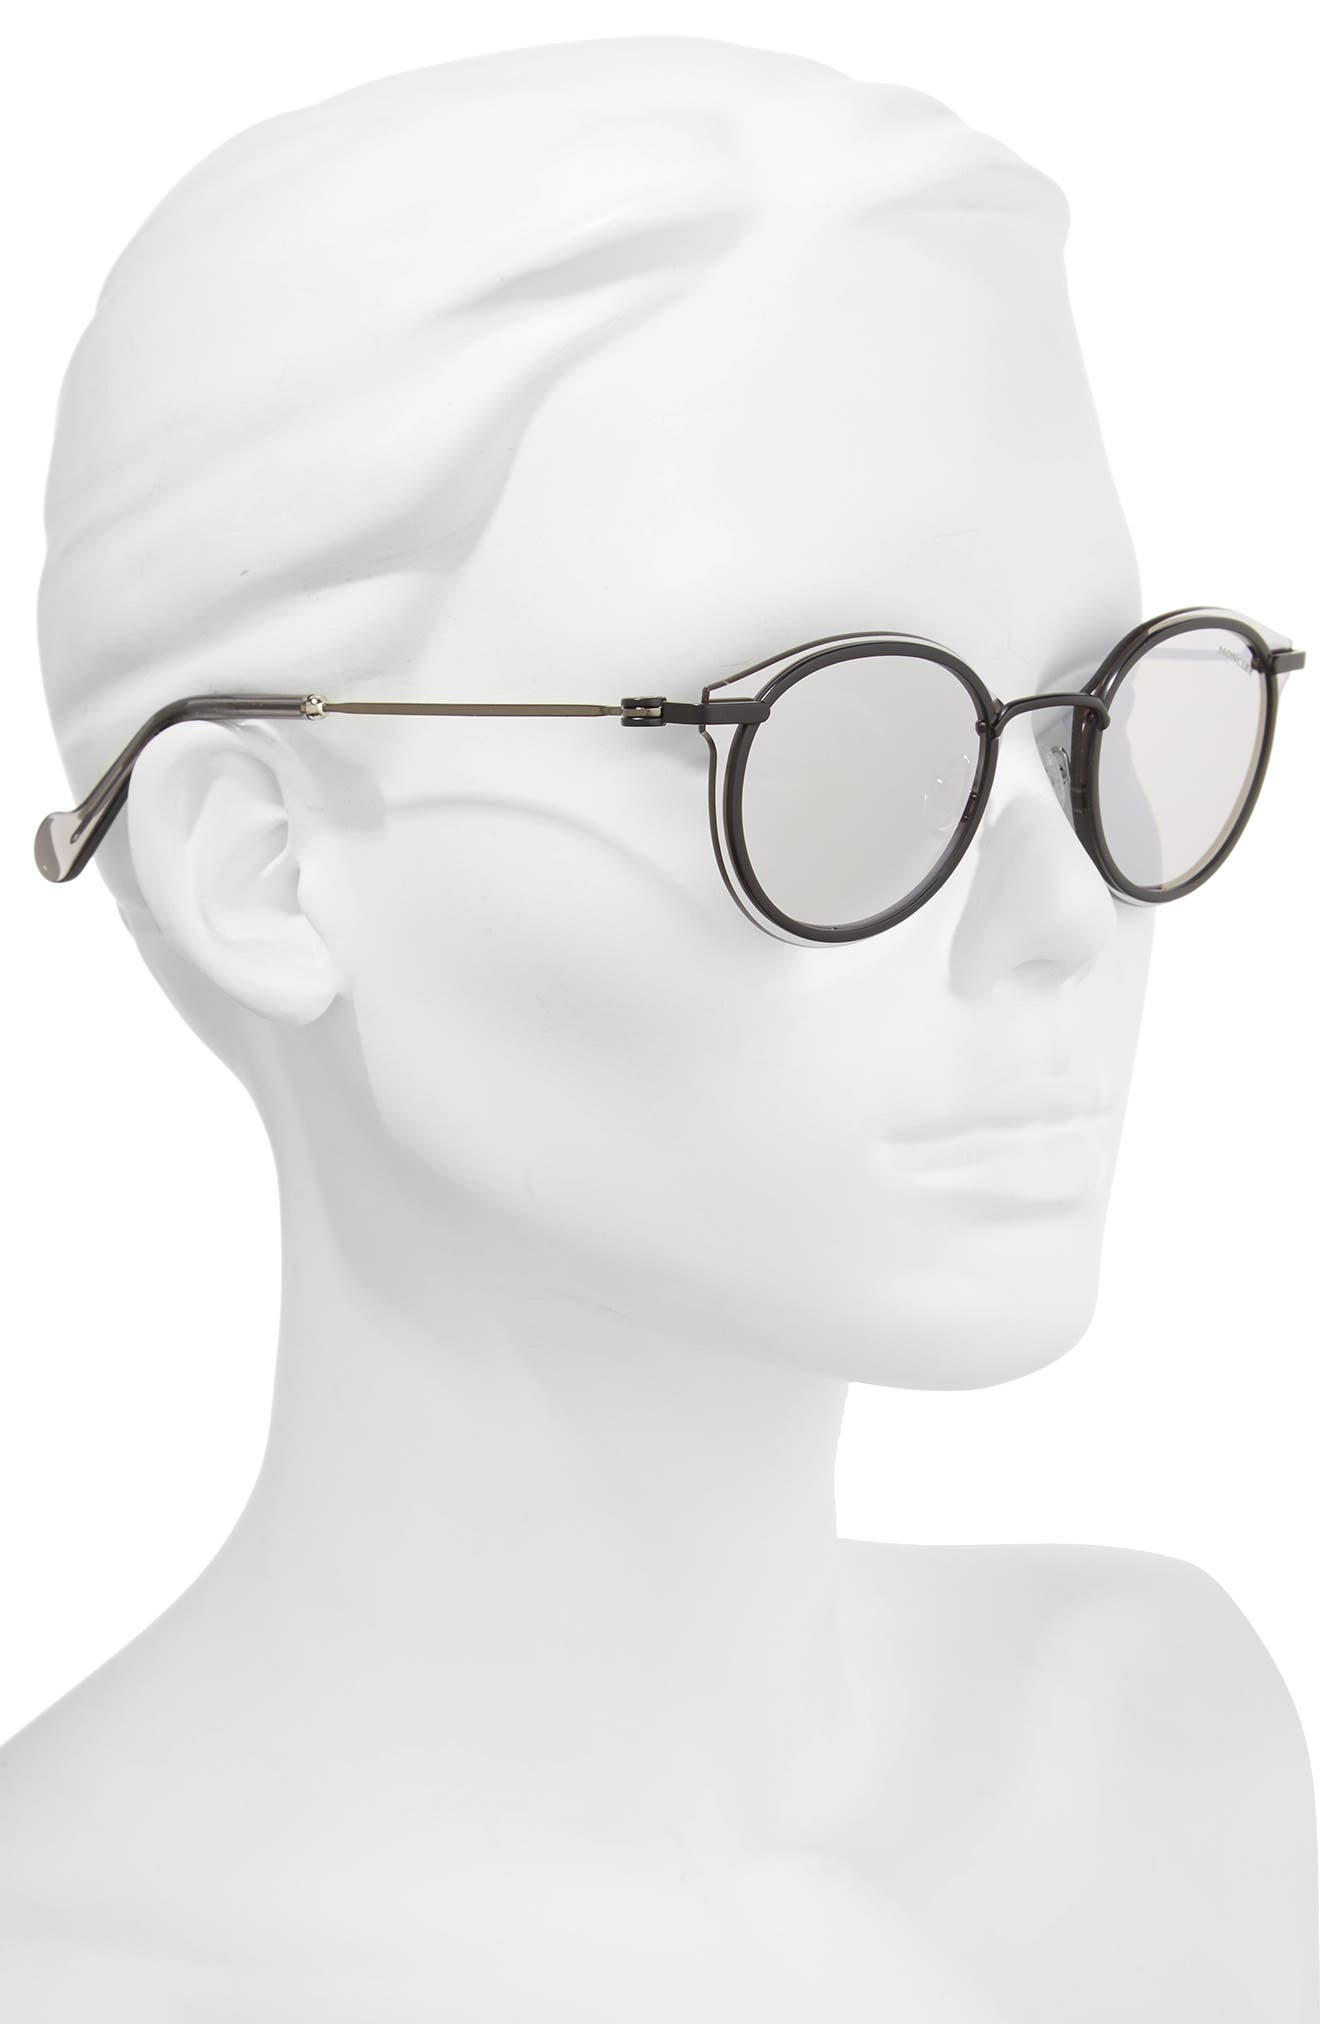 58mm Mirrored Round Sunglasses,                             Alternate thumbnail 2, color,                             001